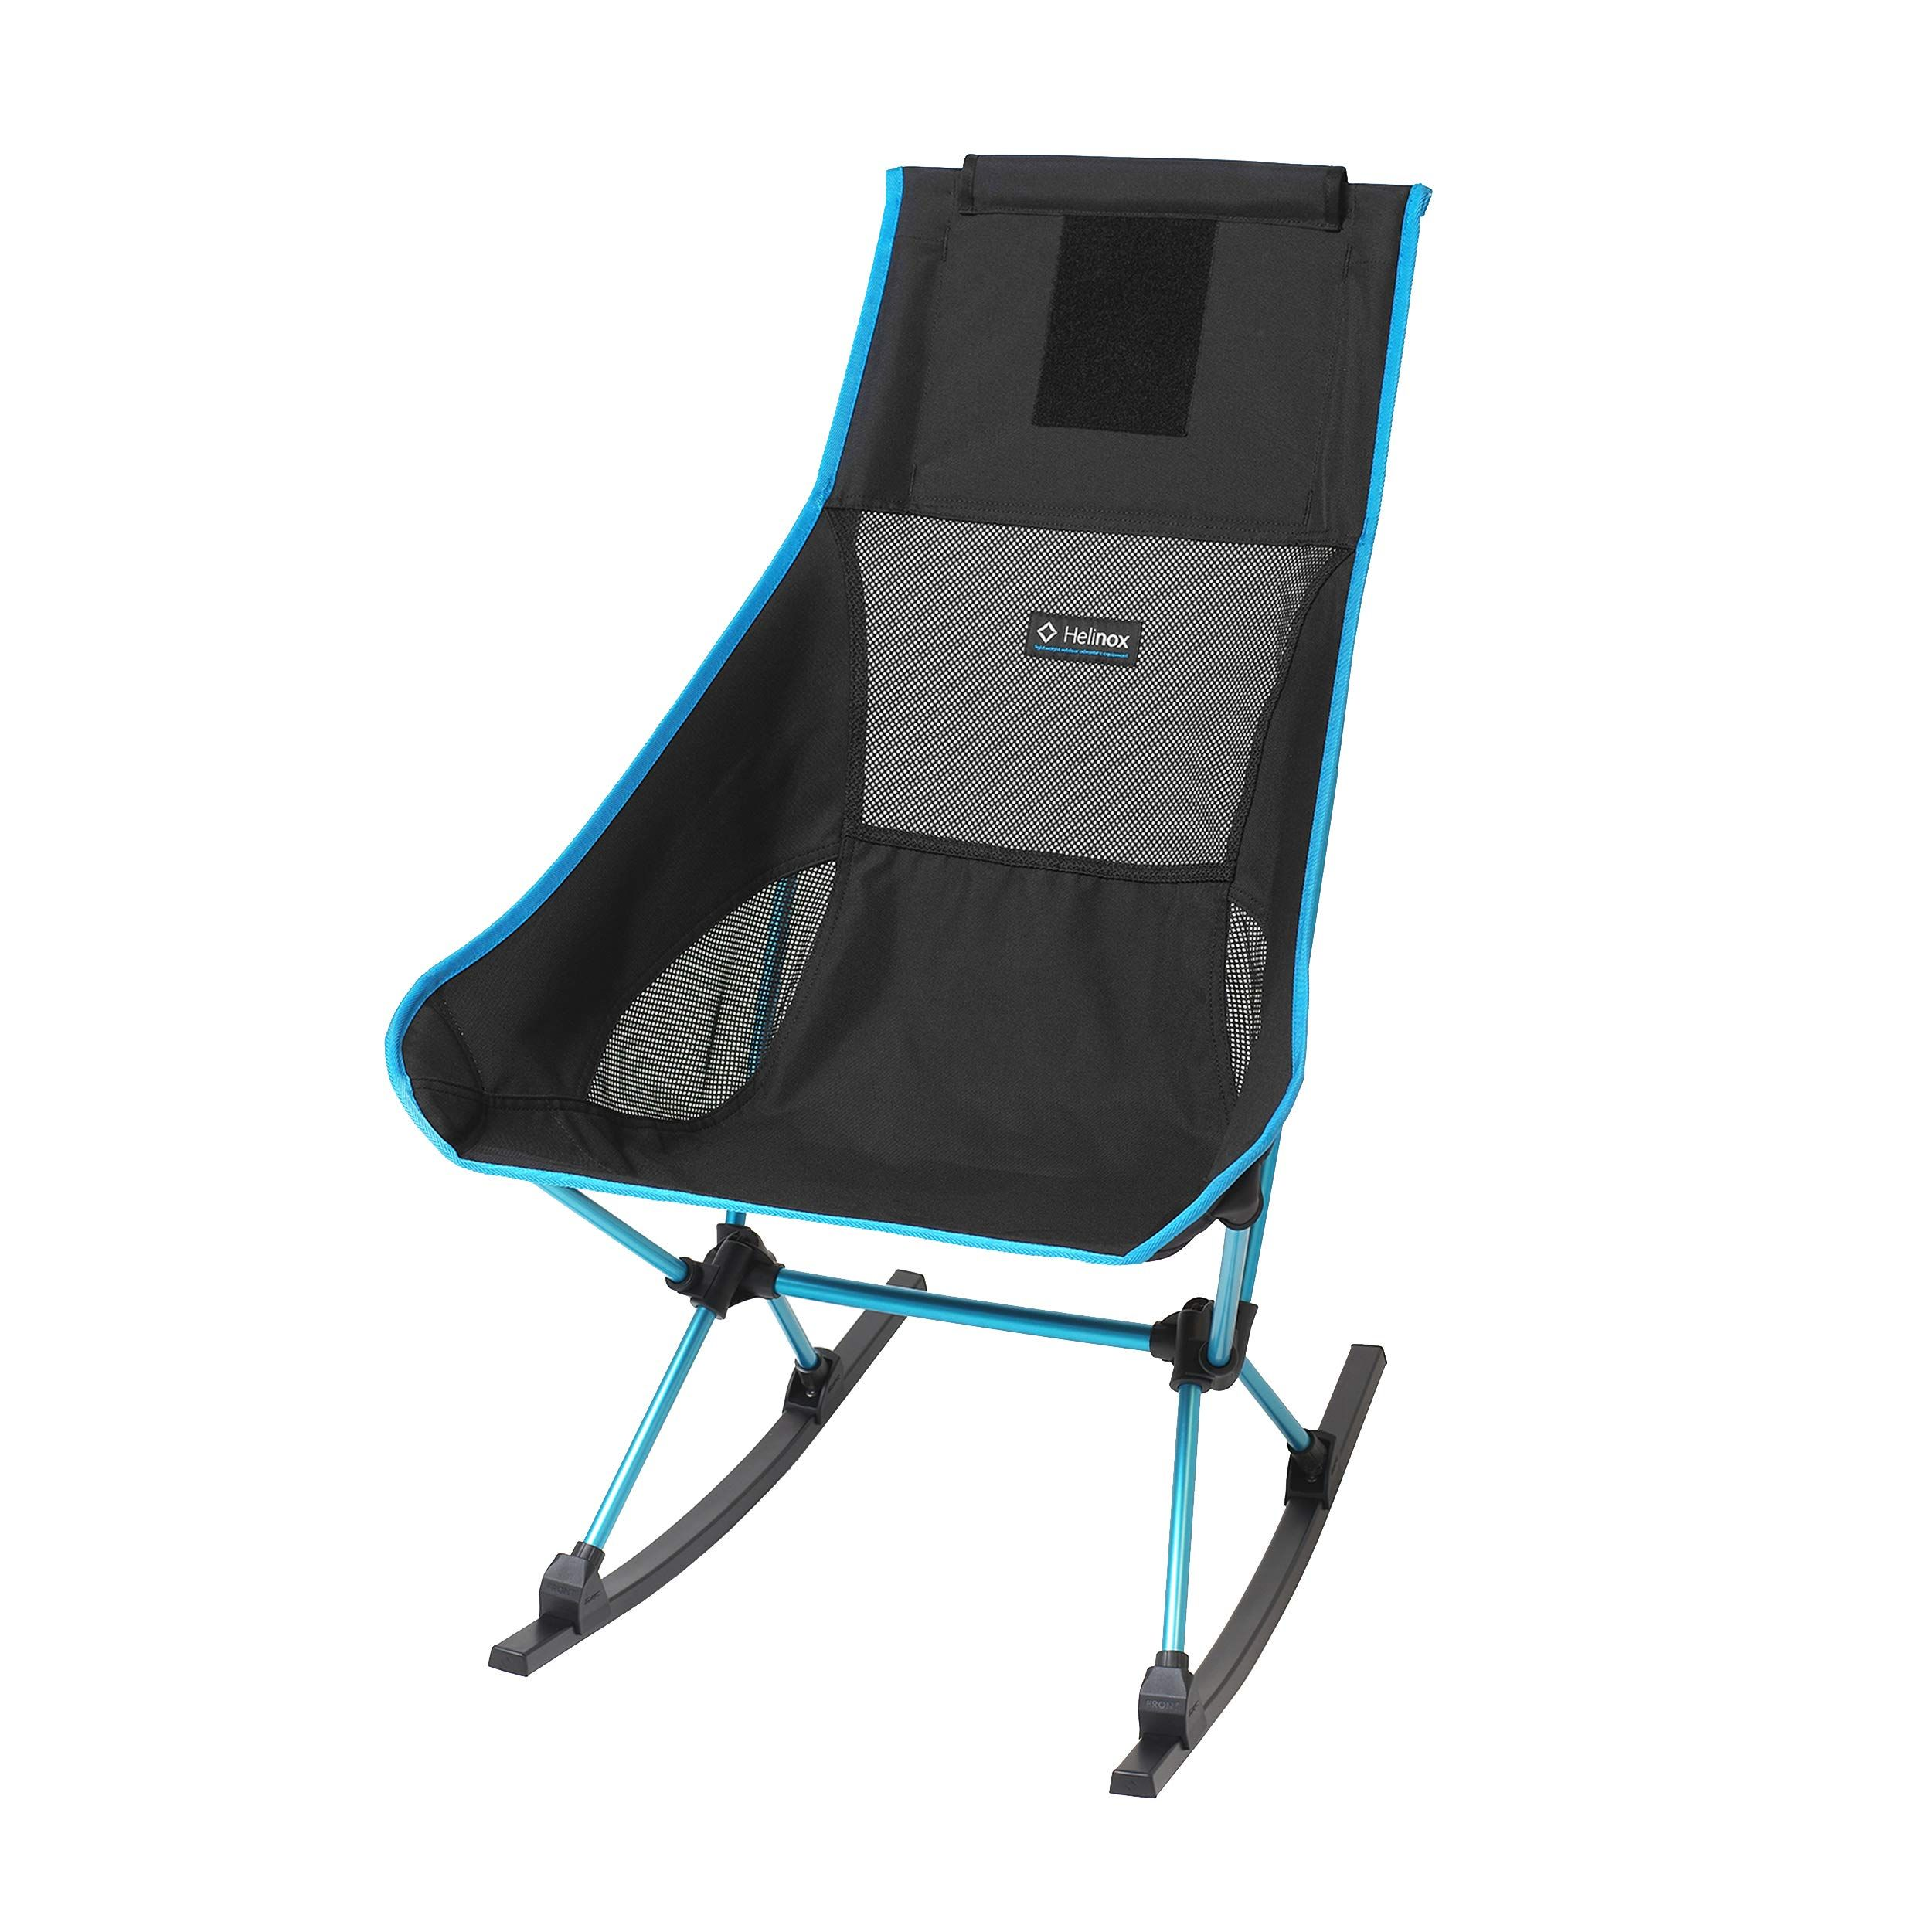 Helinox Chair Two Rocker Lightweight, Compact, Collapsible